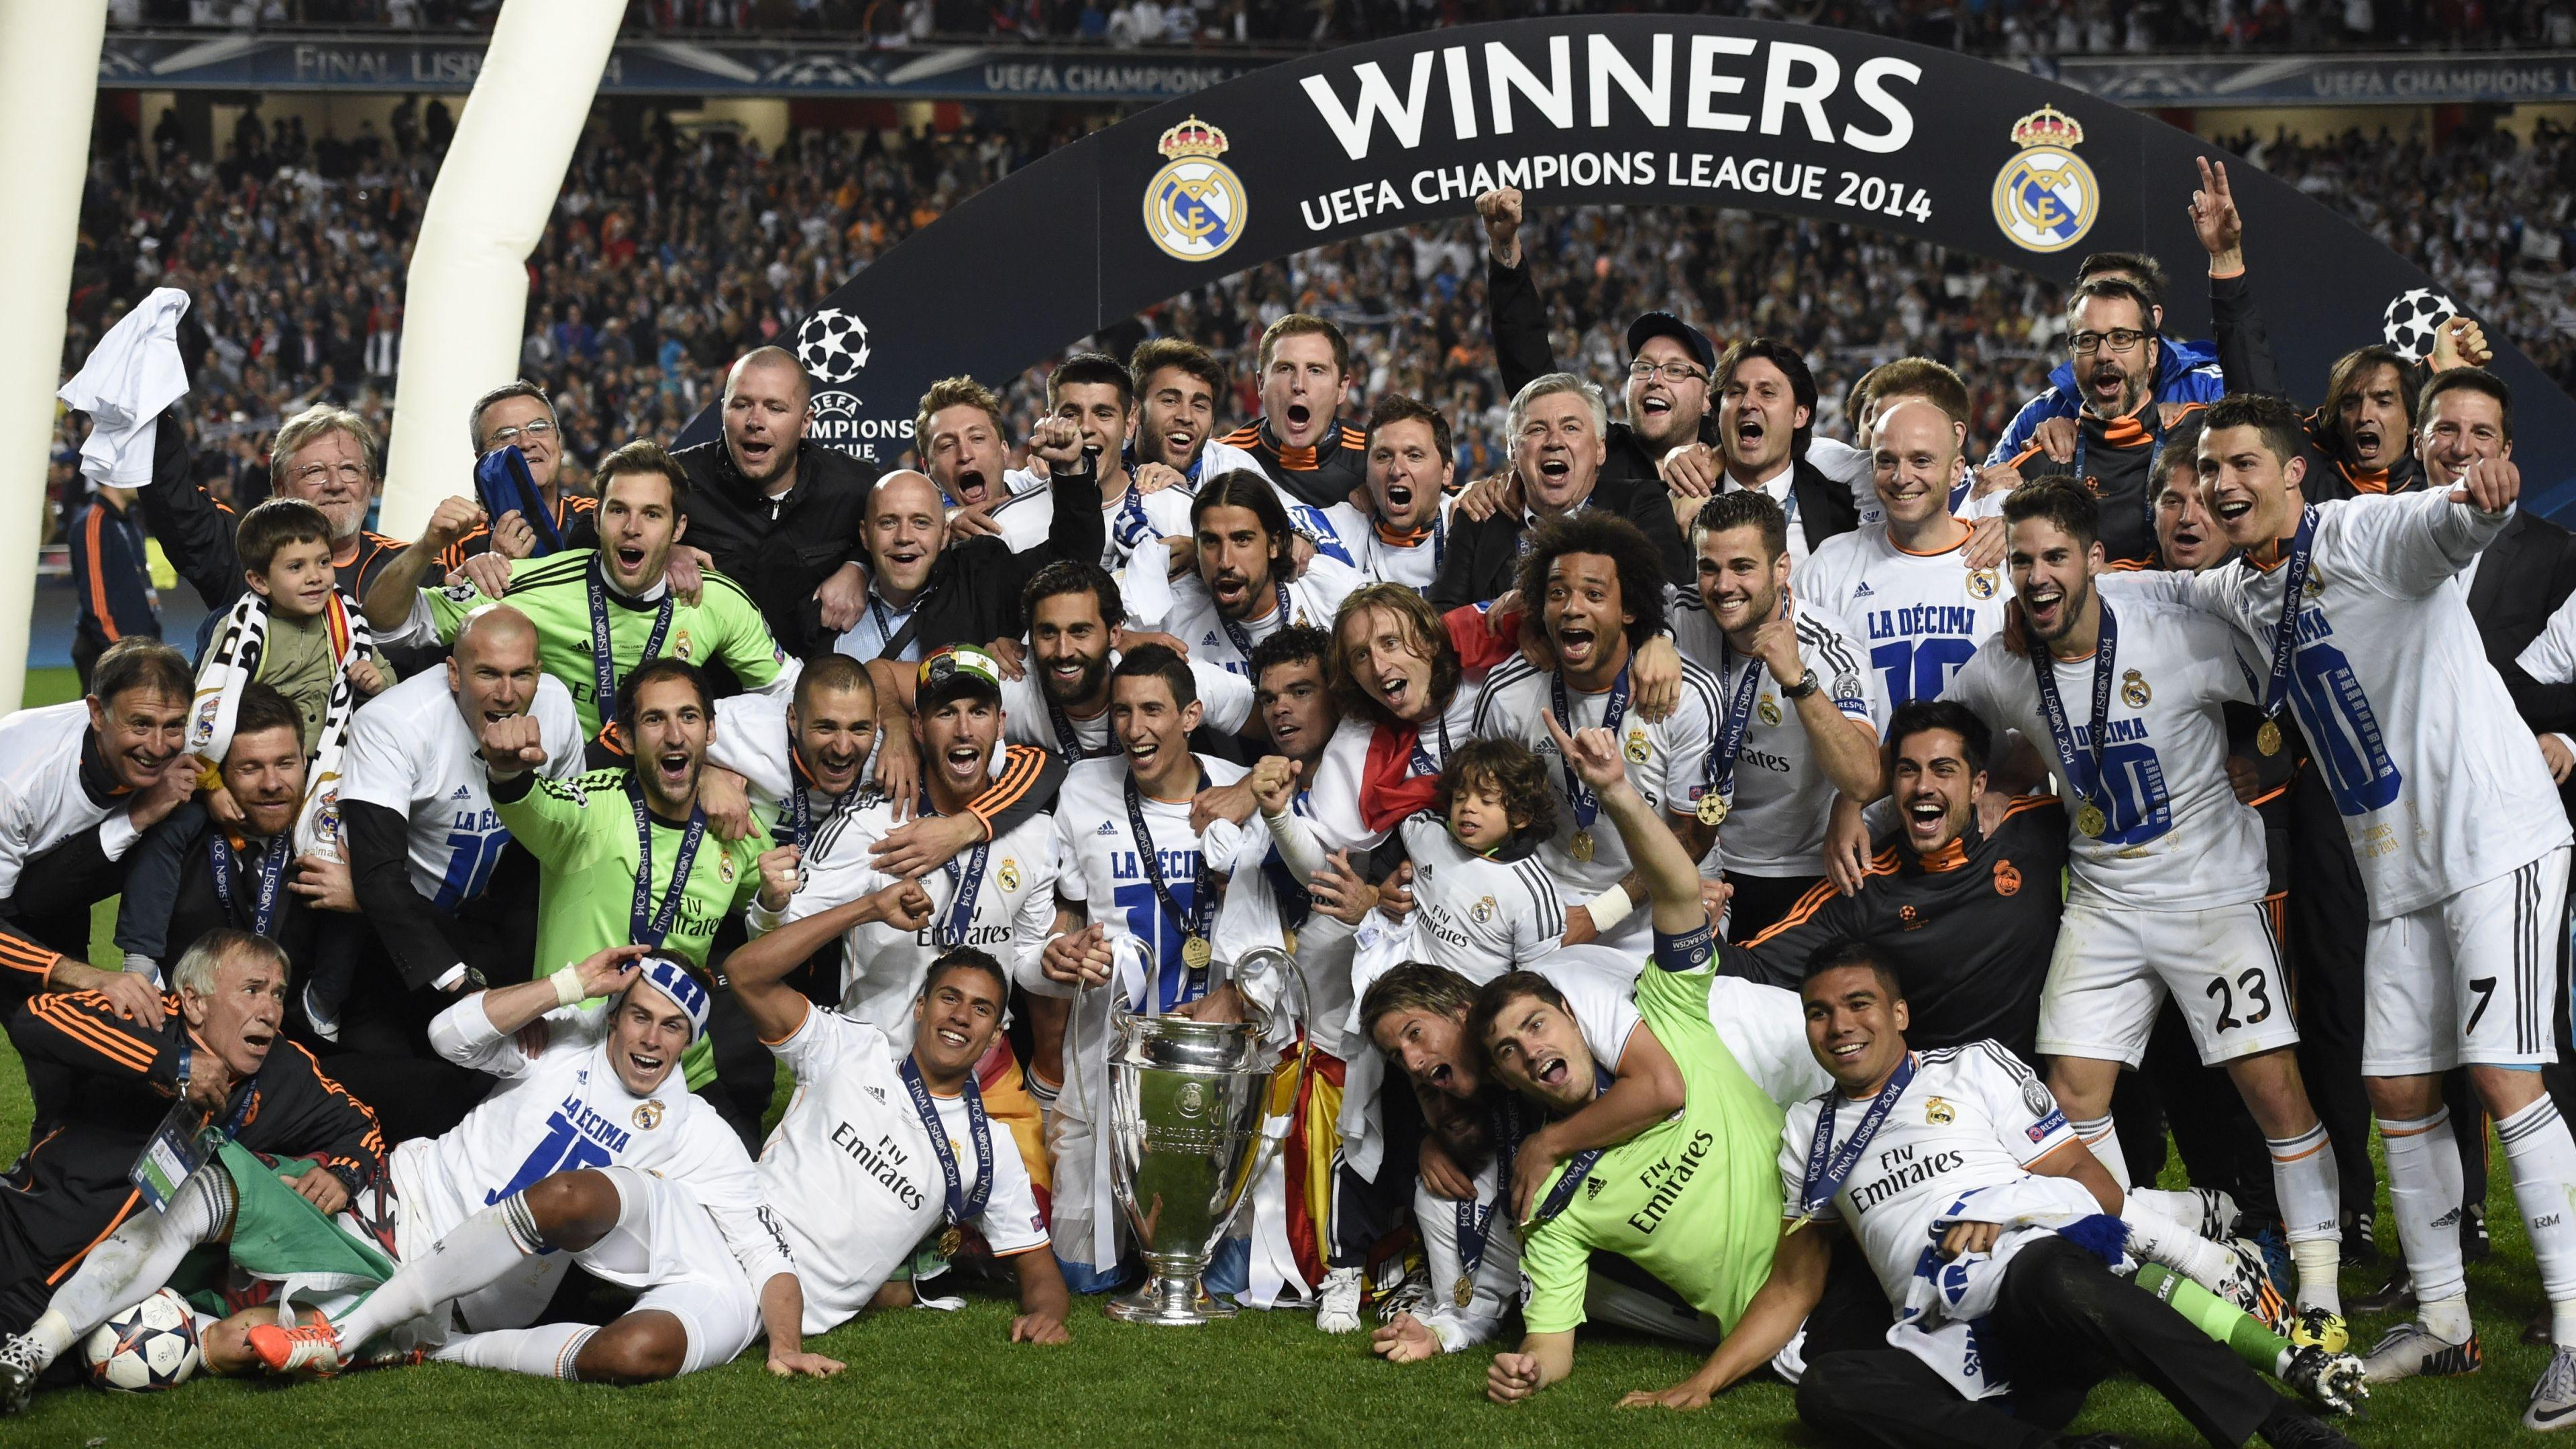 Real Madrid winners Champions League 2014 wallpapers